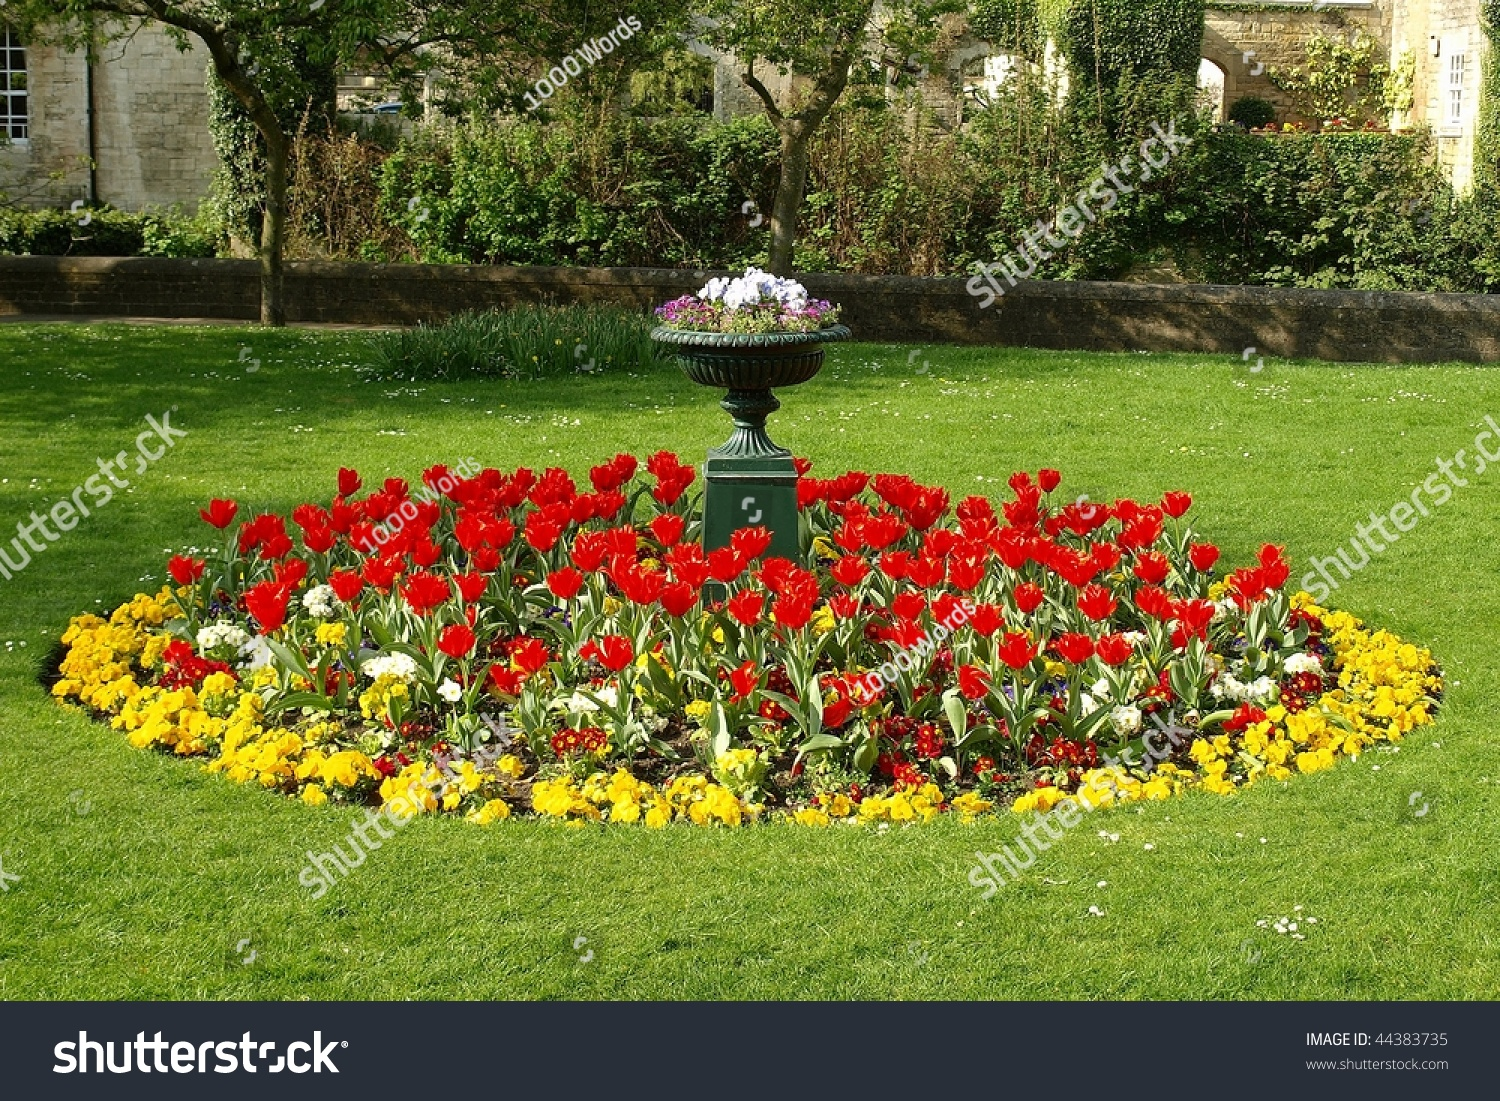 Flower bed formal garden stock photo 44383735 shutterstock - How to landscape a flower bed ...